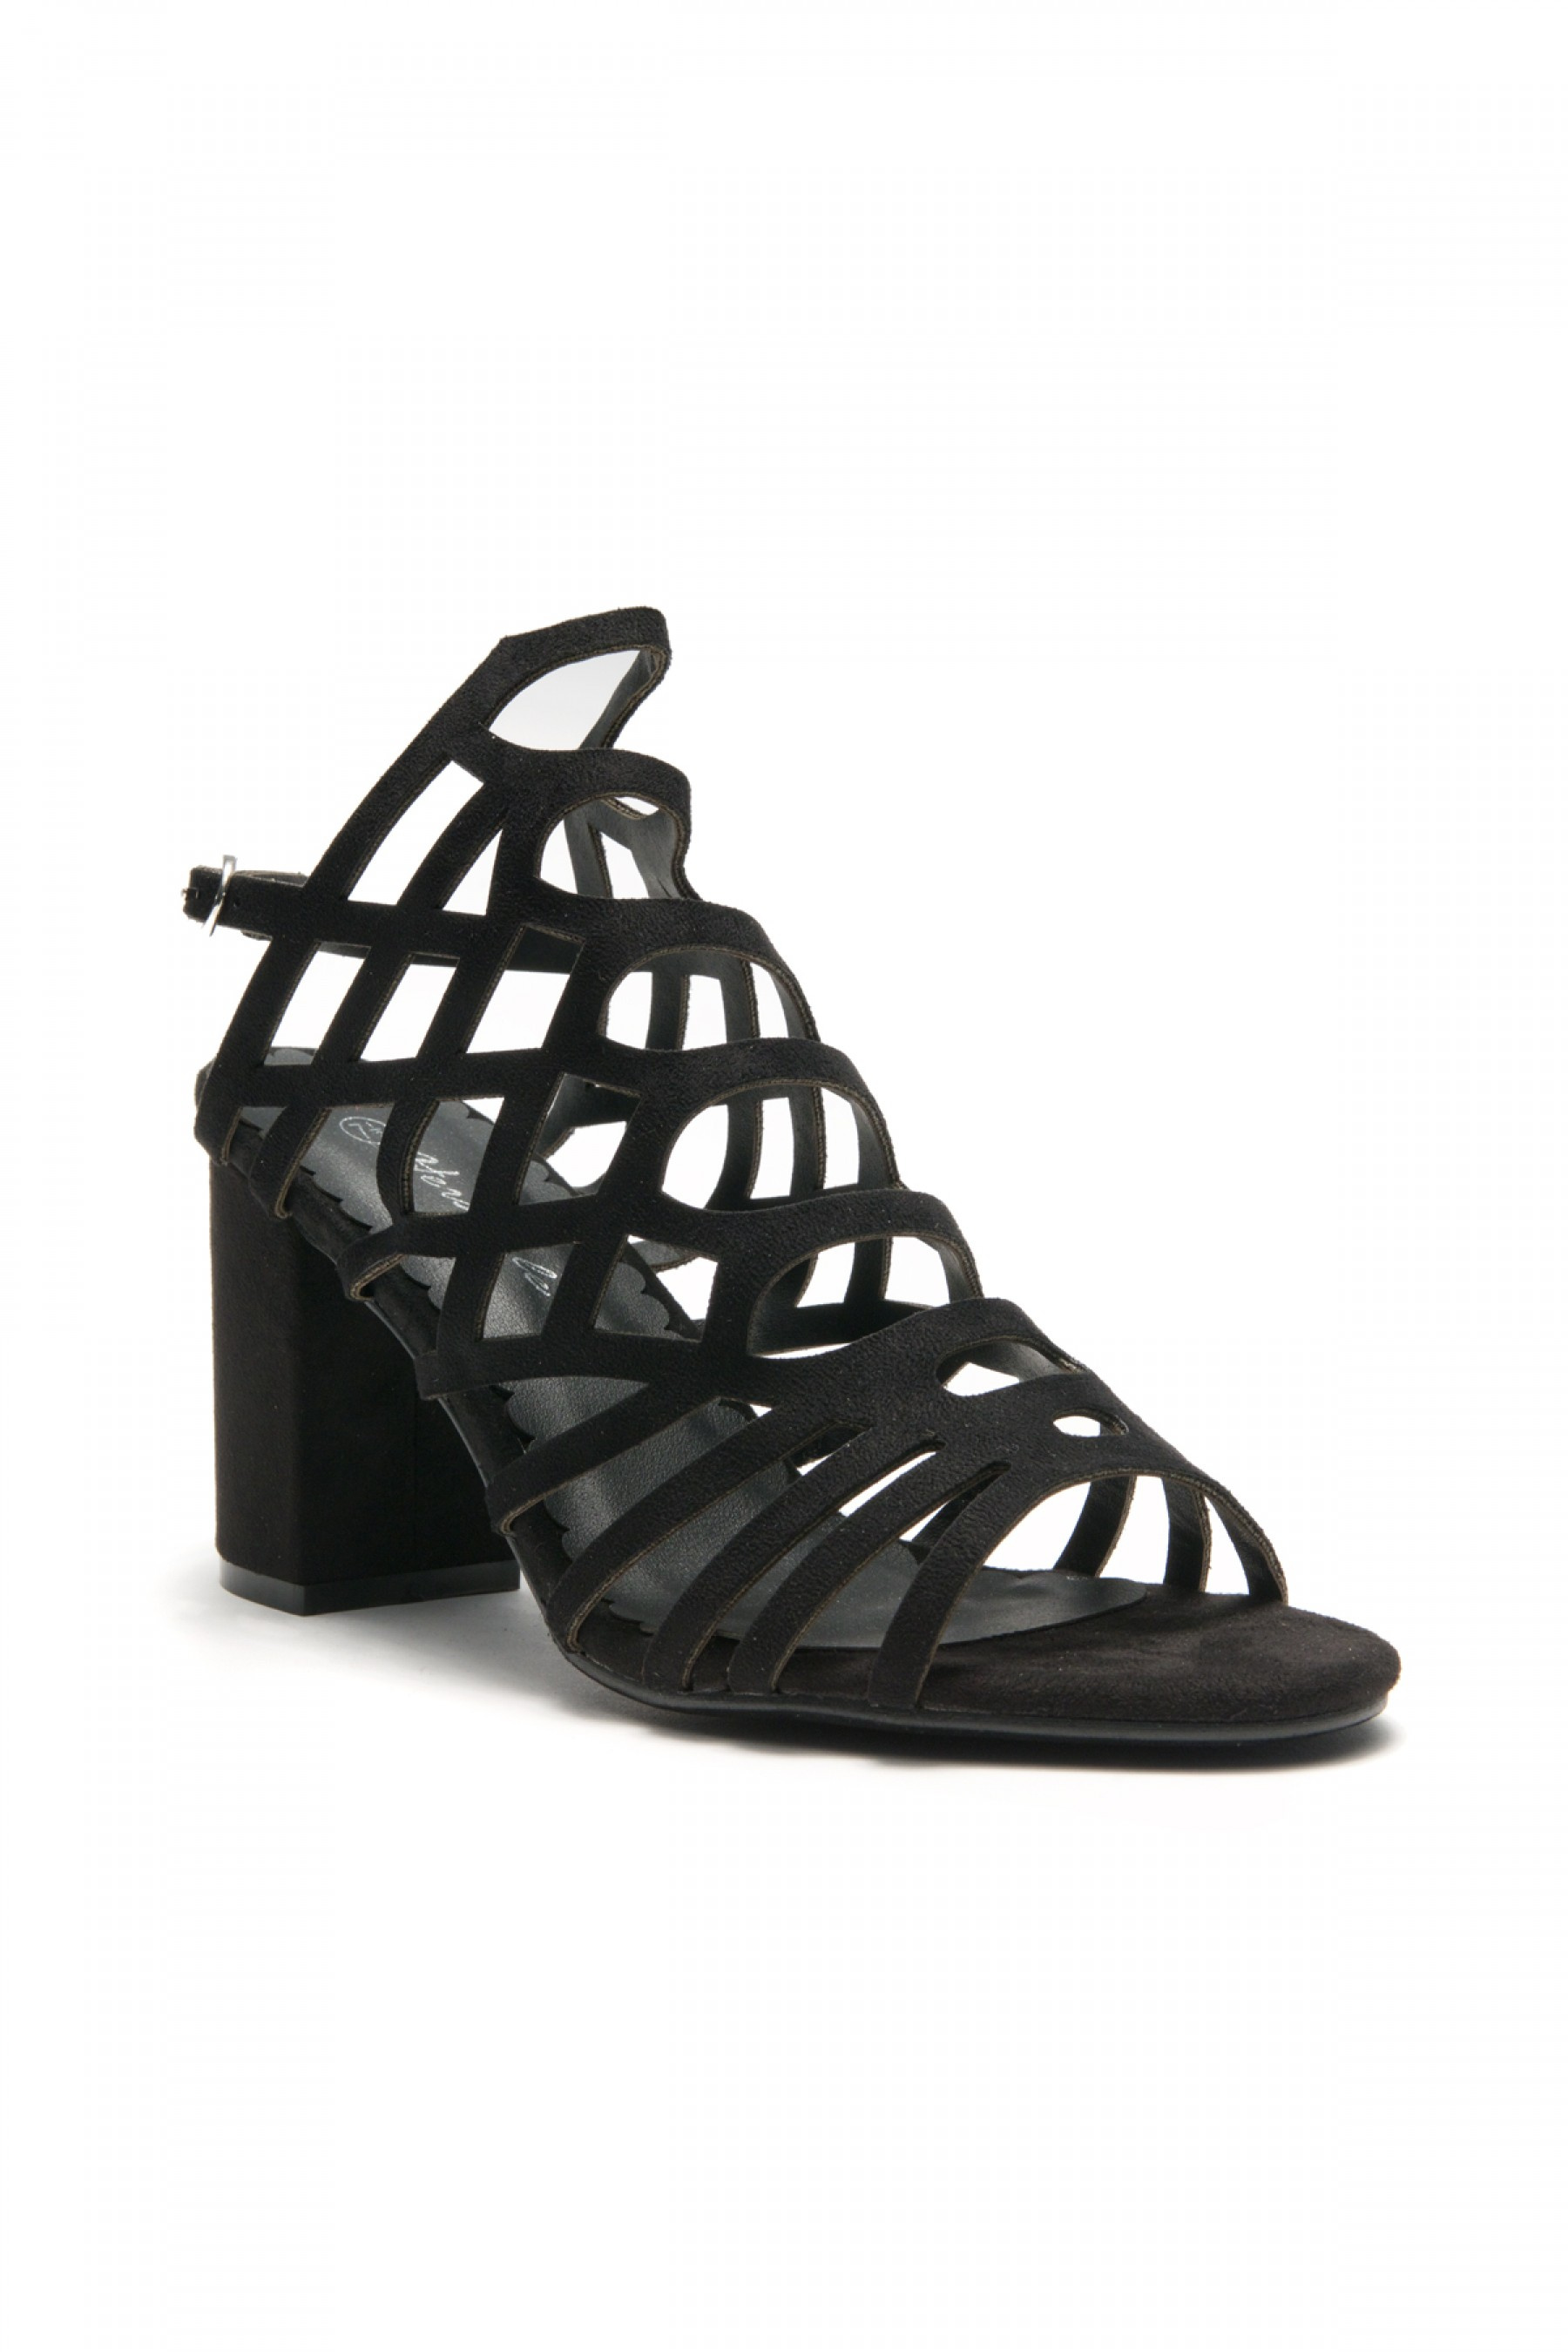 HerStyle Kesseey Laser cut dress sandal,  caged look, strappy style from vamp to ankle ,wrapped chunky heel (Black)